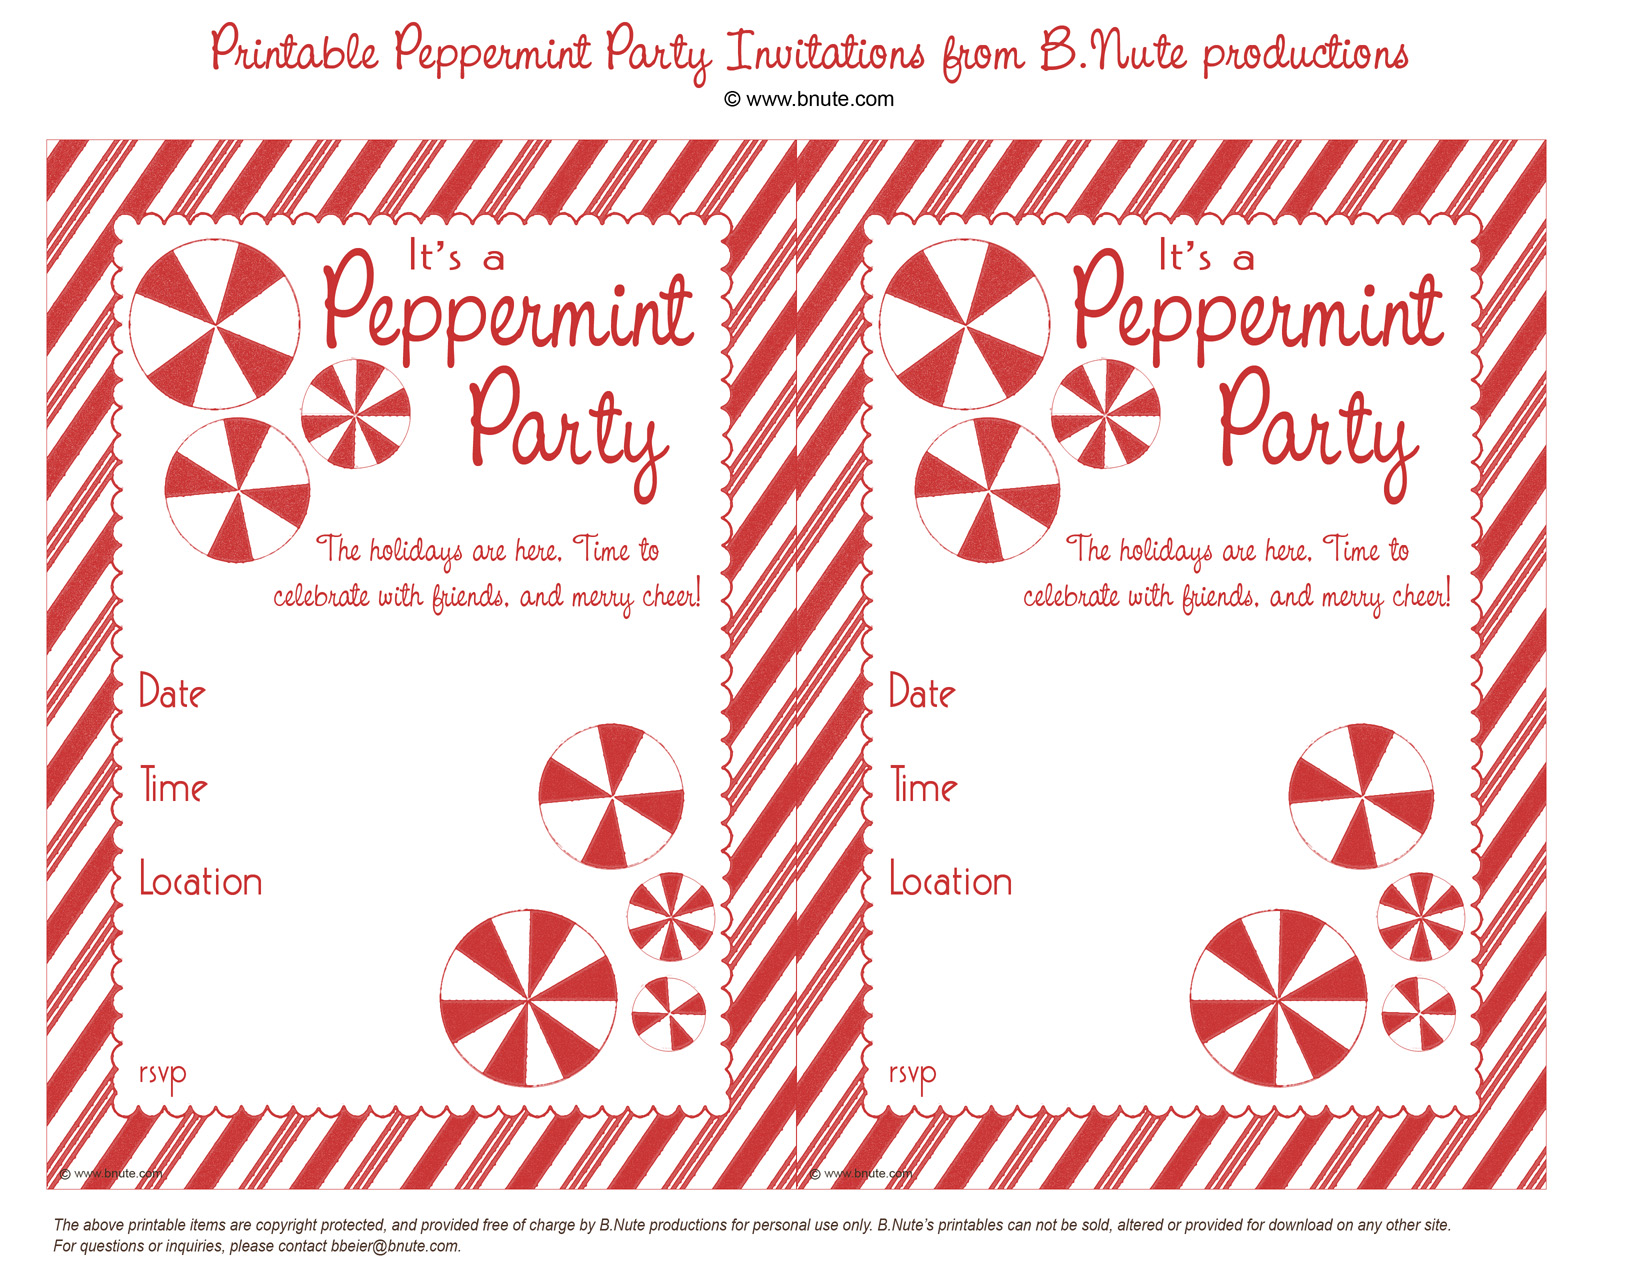 bnute productions printable peppermint party invitations printable peppermint party invitations by b nute productions